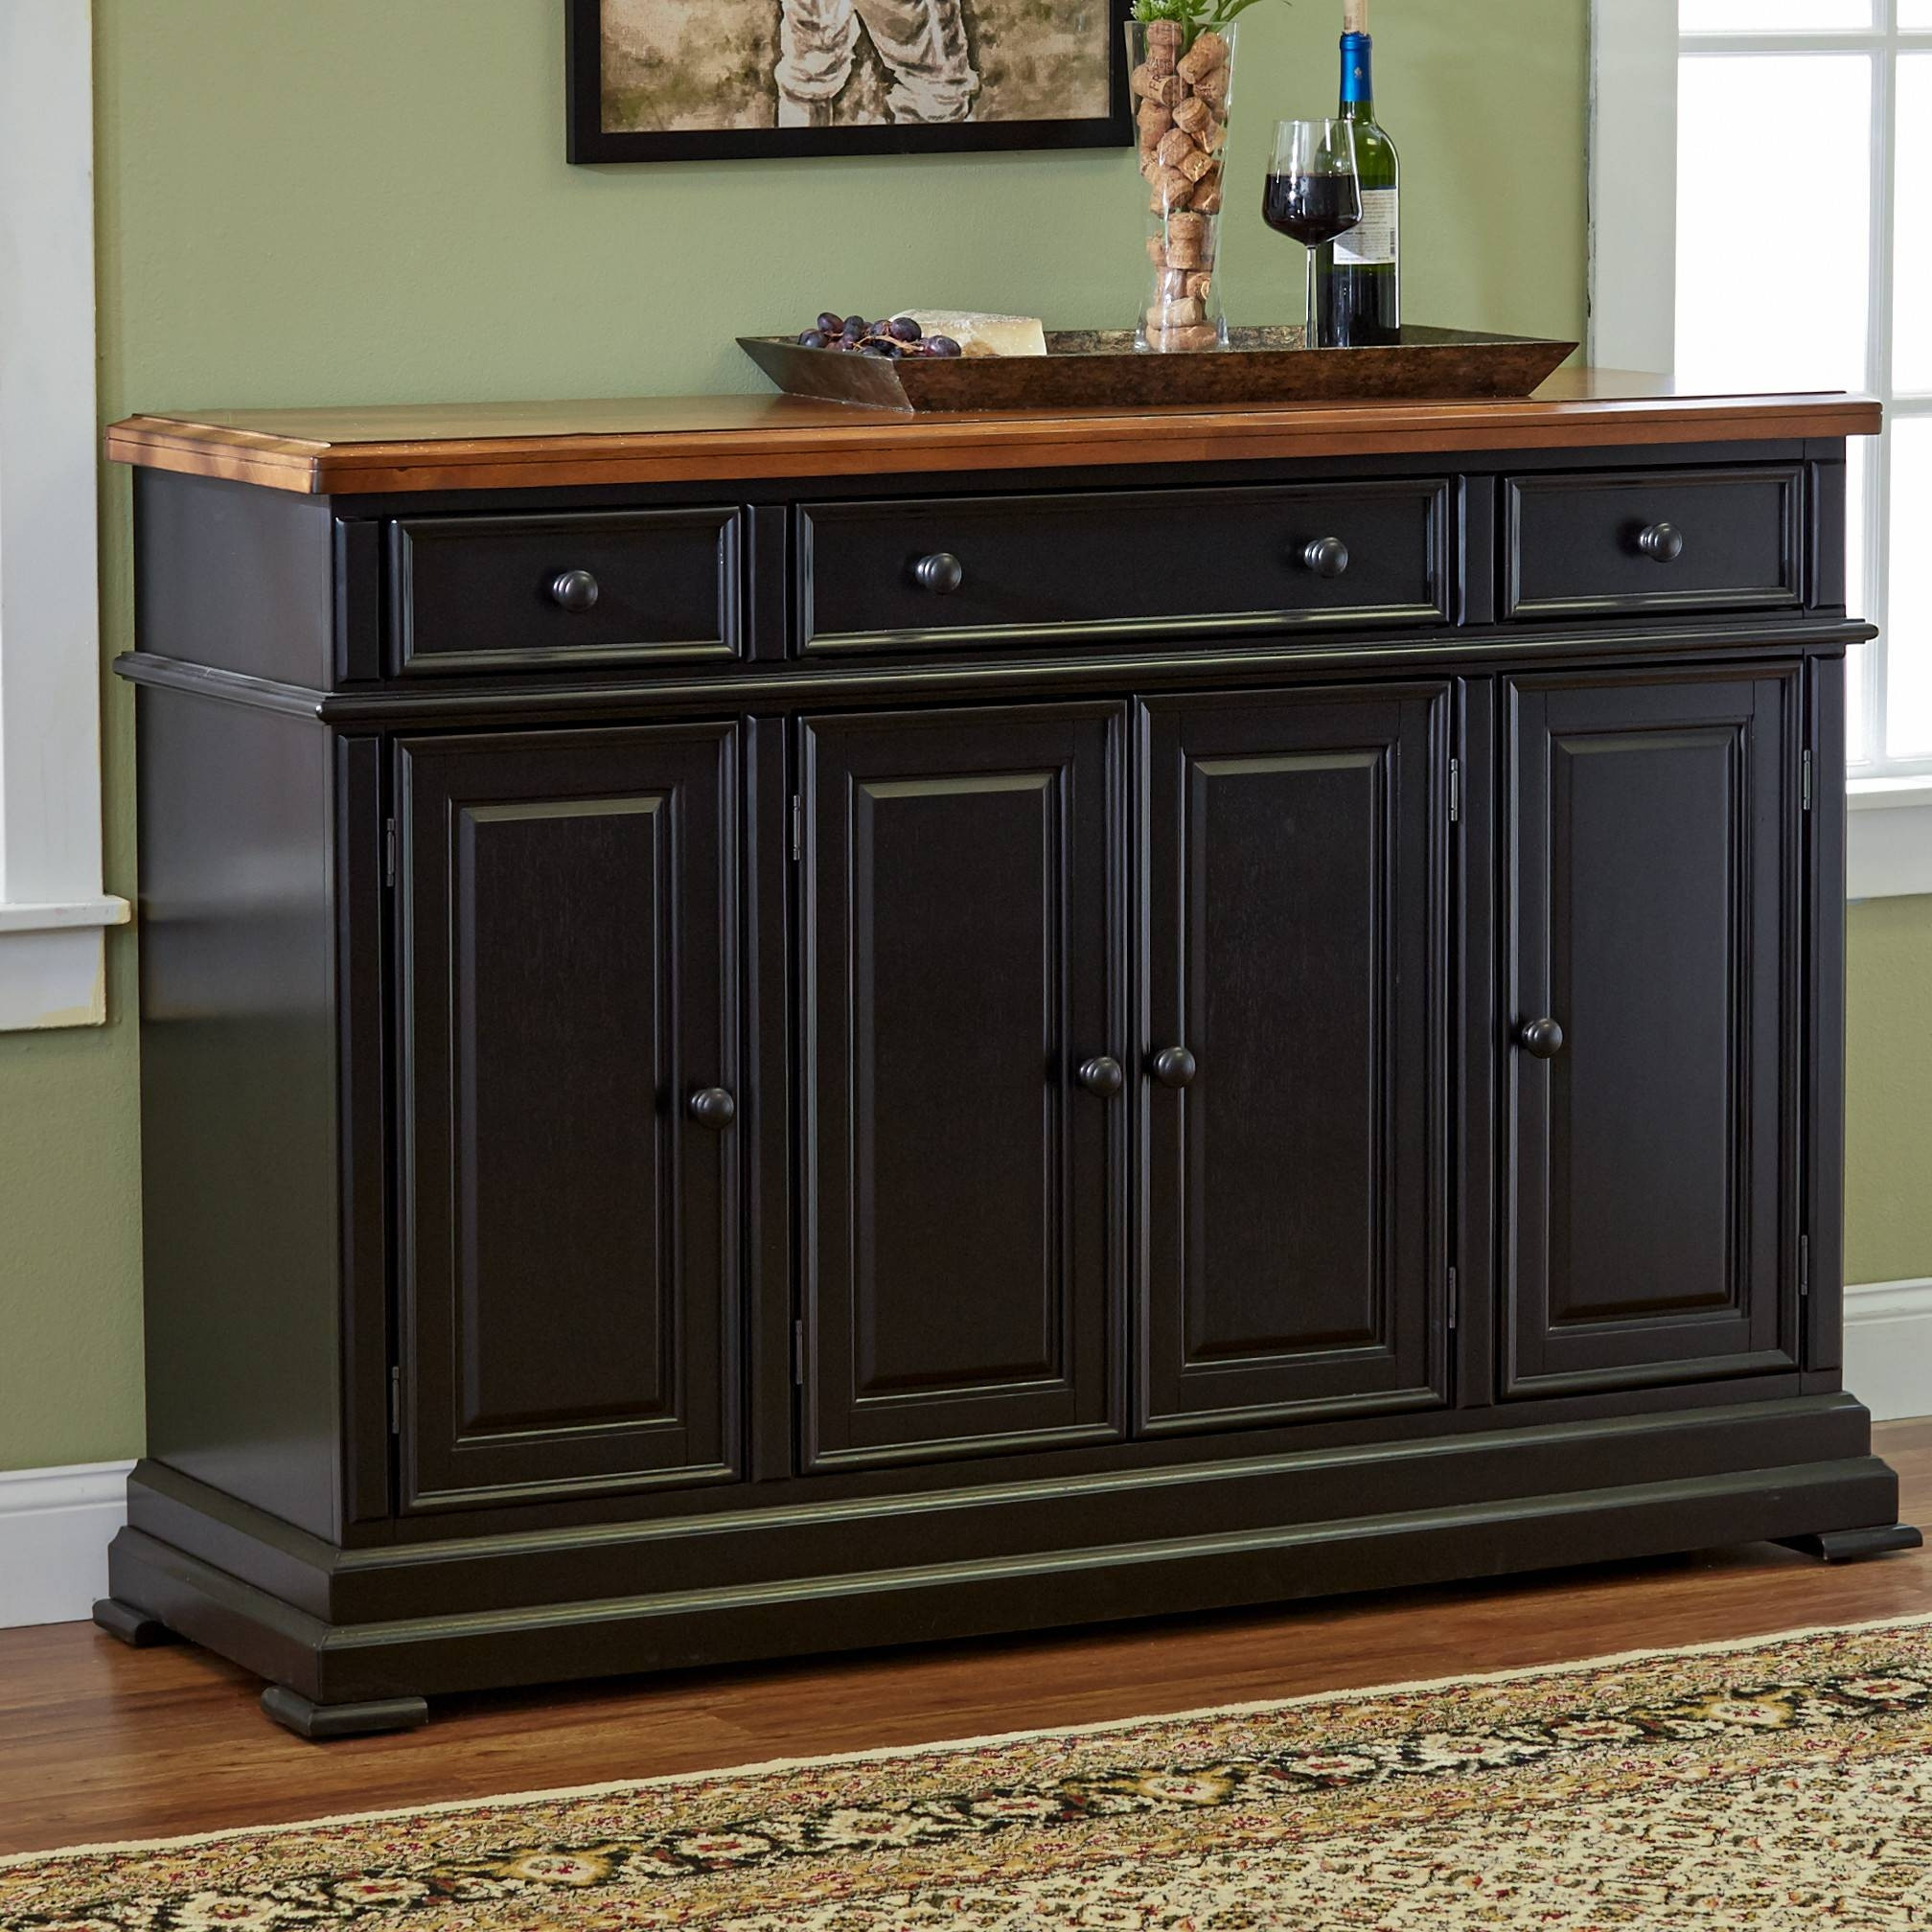 Best ideas about Dining Room Sideboard . Save or Pin 15 Best of Black Dining Room Sideboards Now.